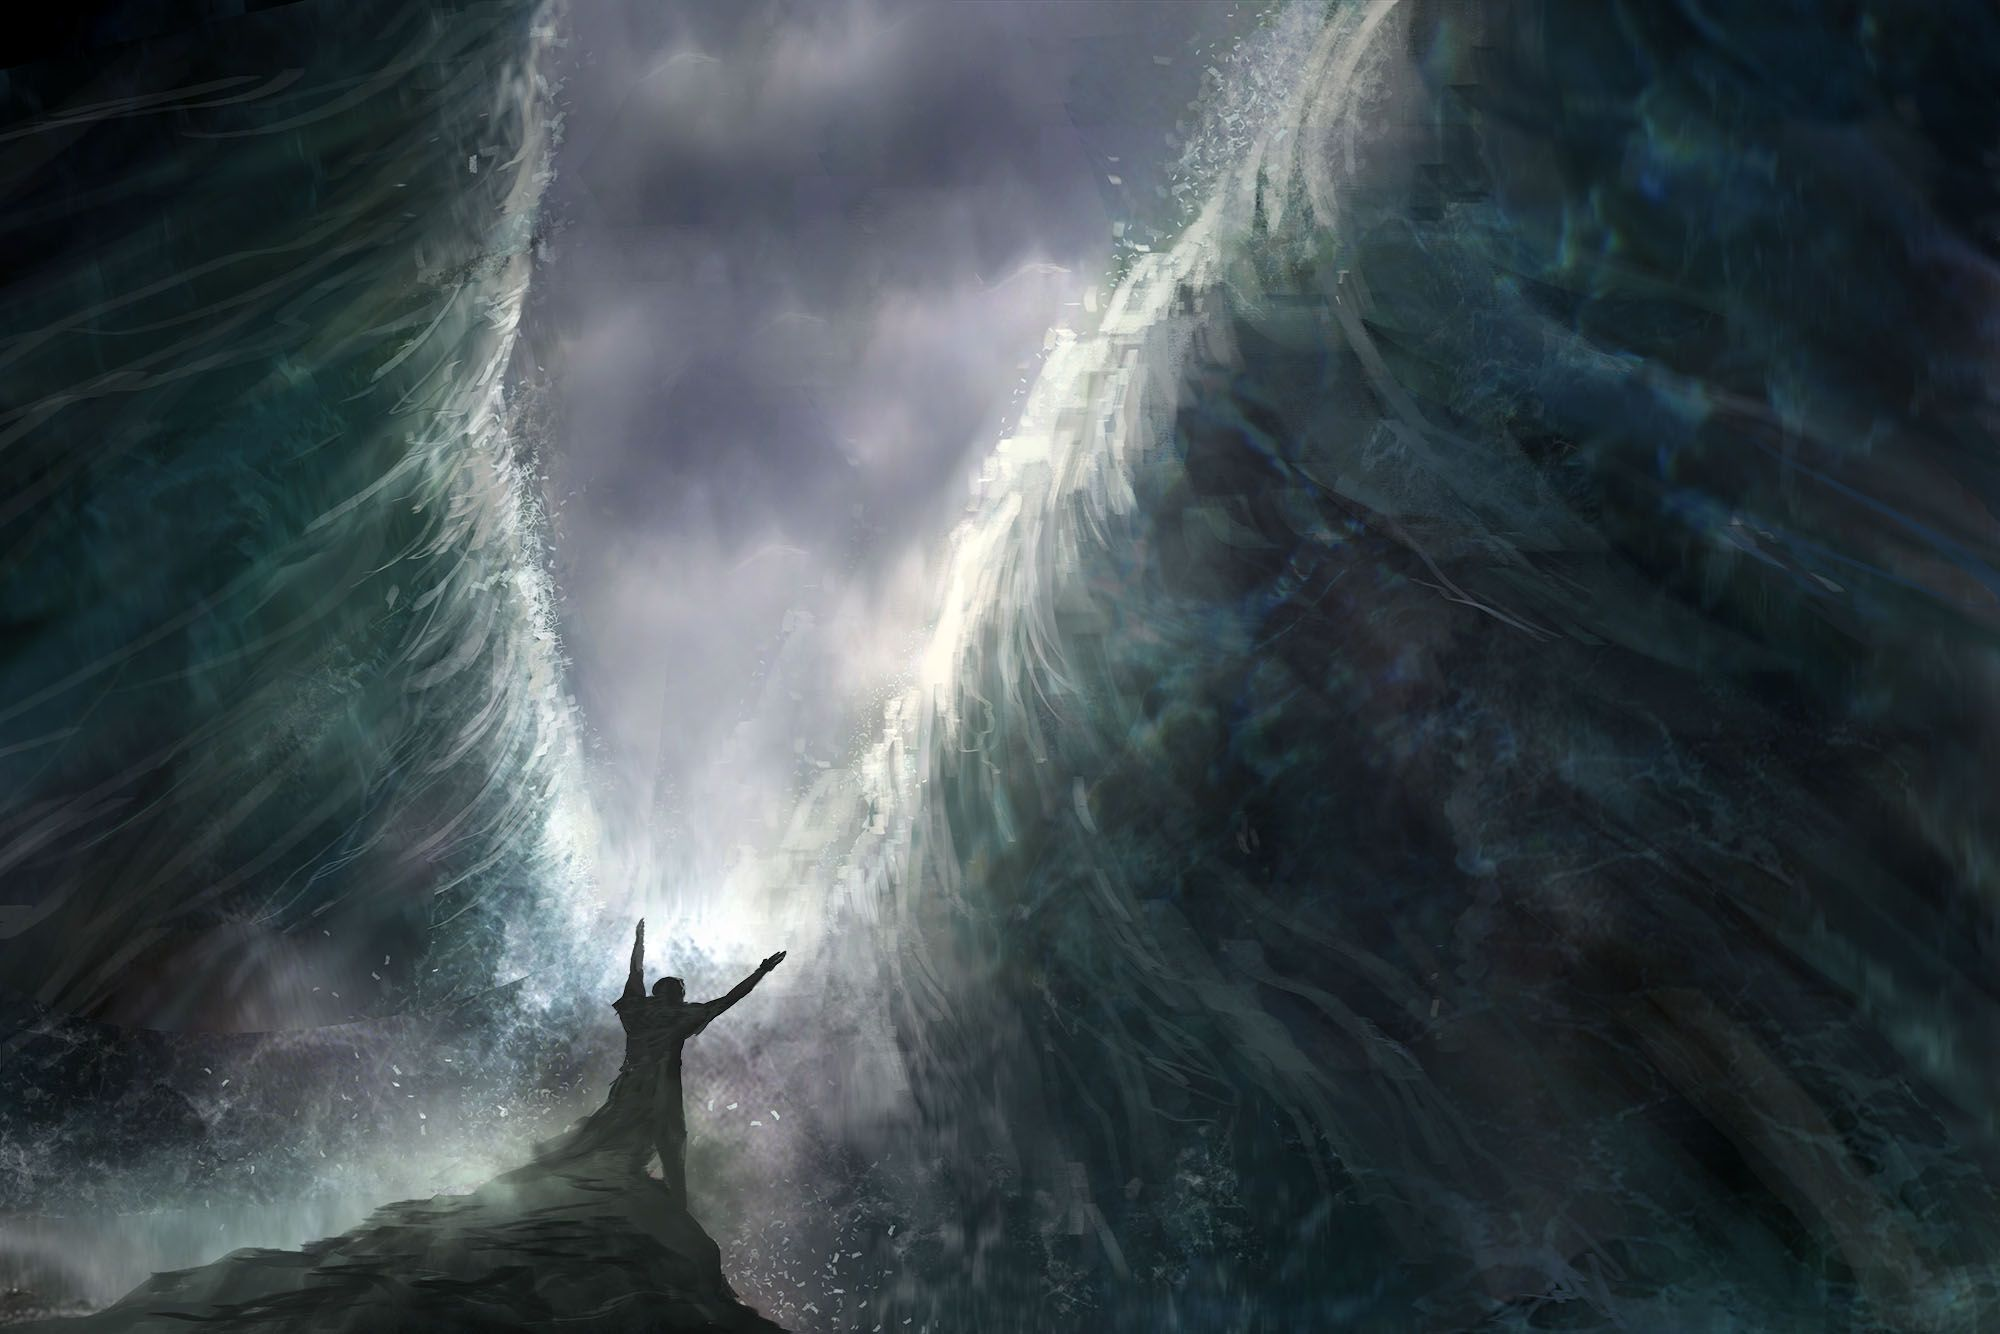 Pin by Phil Armour on Bible collage | Red sea, Christian art projects, Moses  red sea